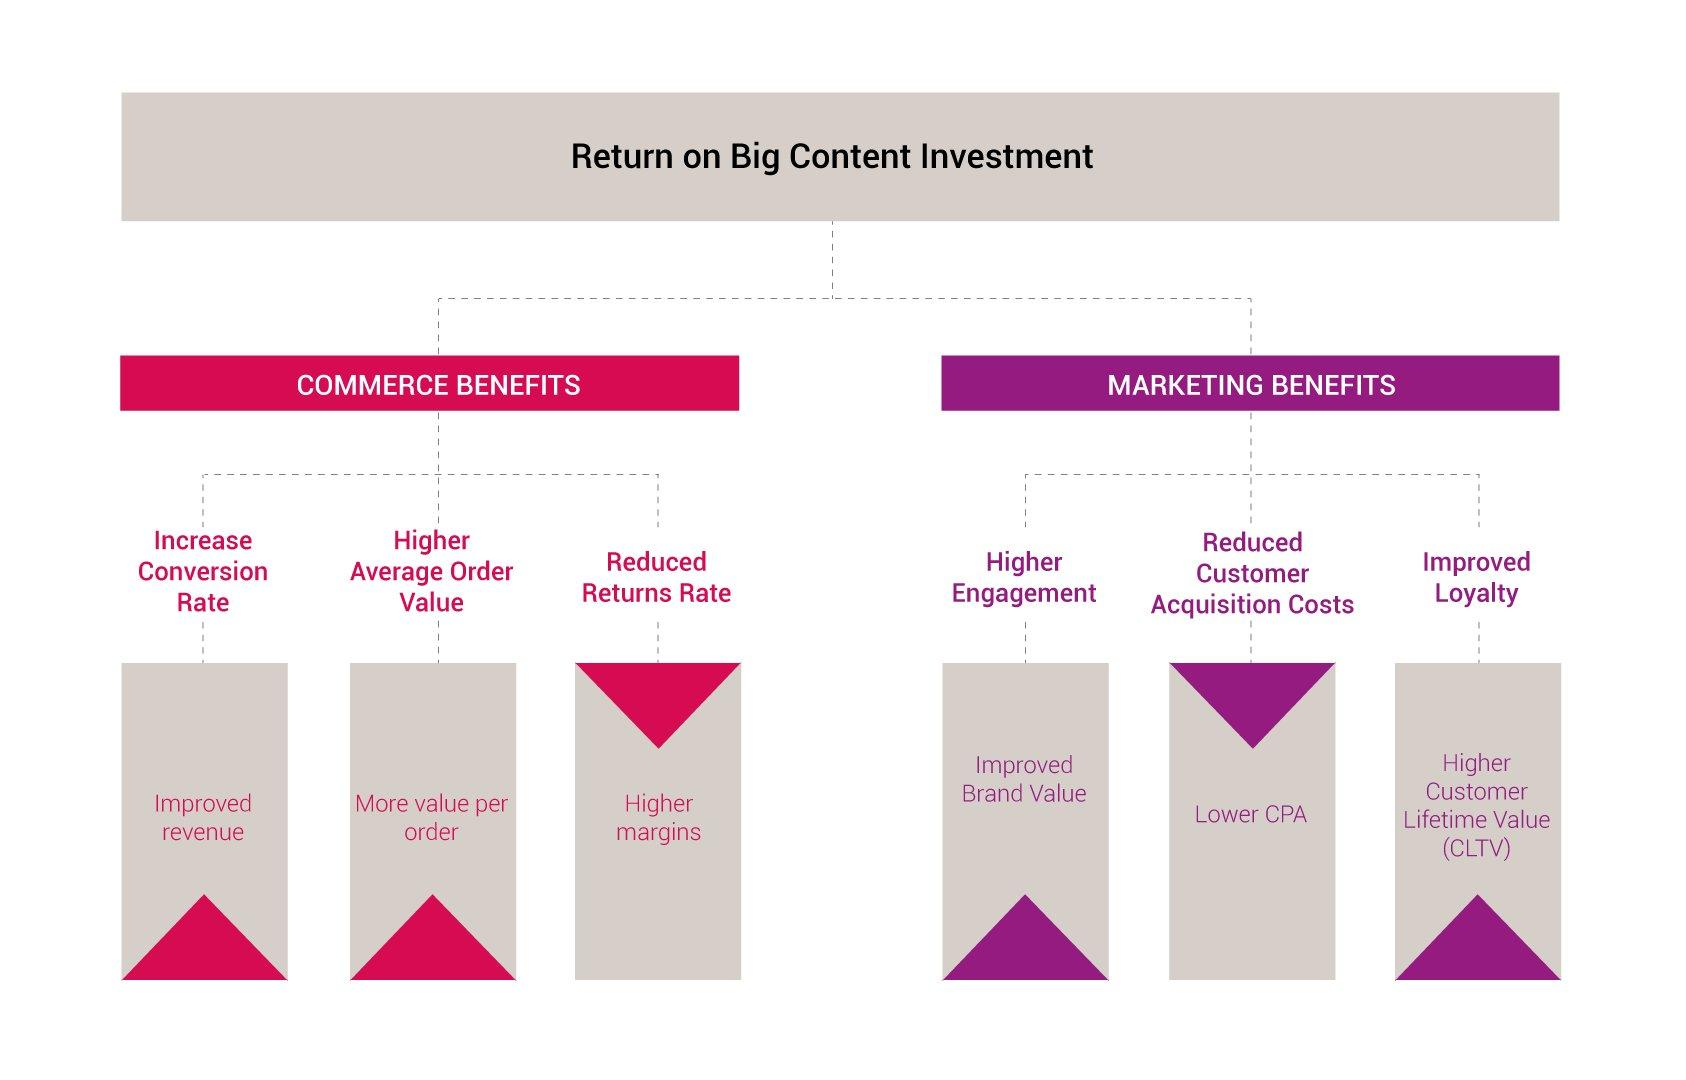 fig-roi-content-investment-return_1